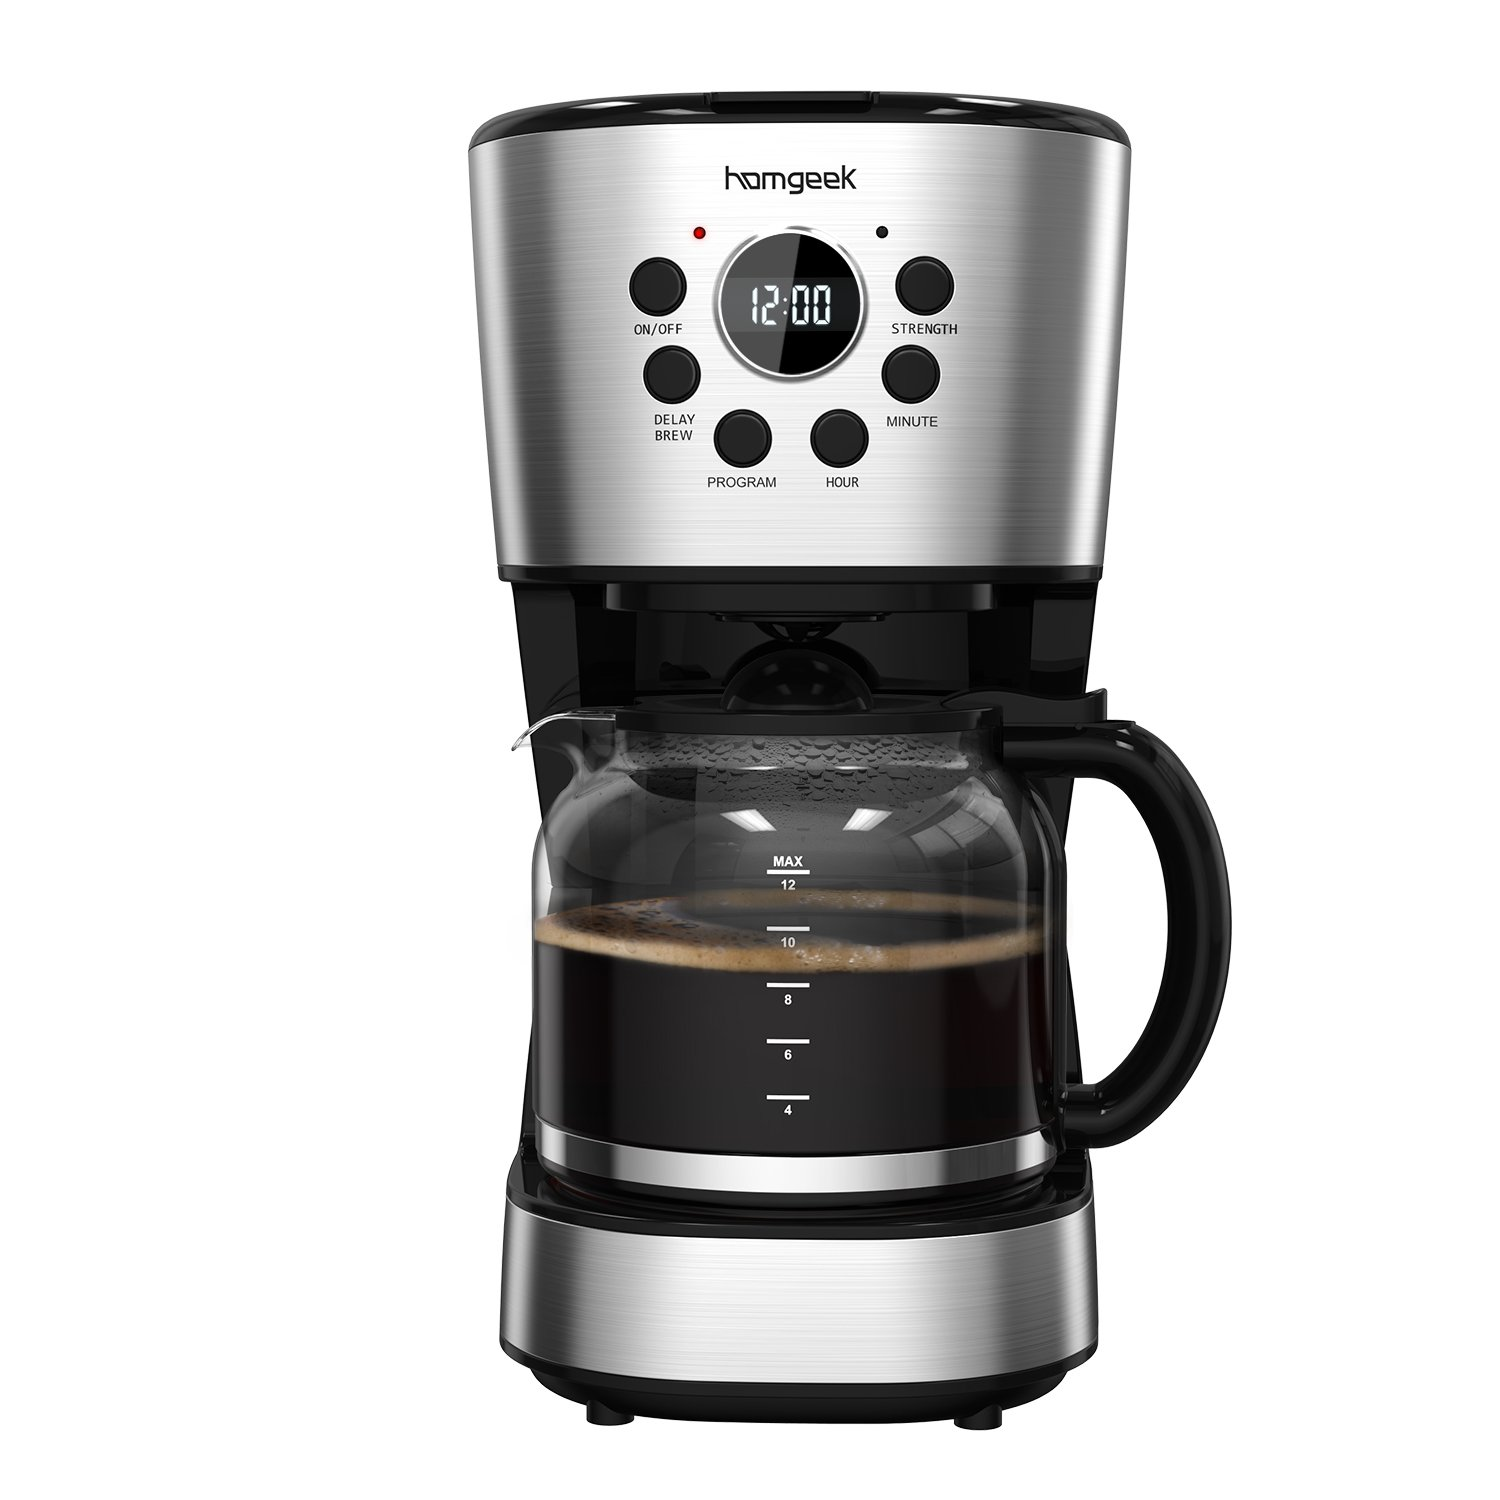 Amazoncom Homgeek Programmable Coffee Maker 12 Cup Coffee Maker